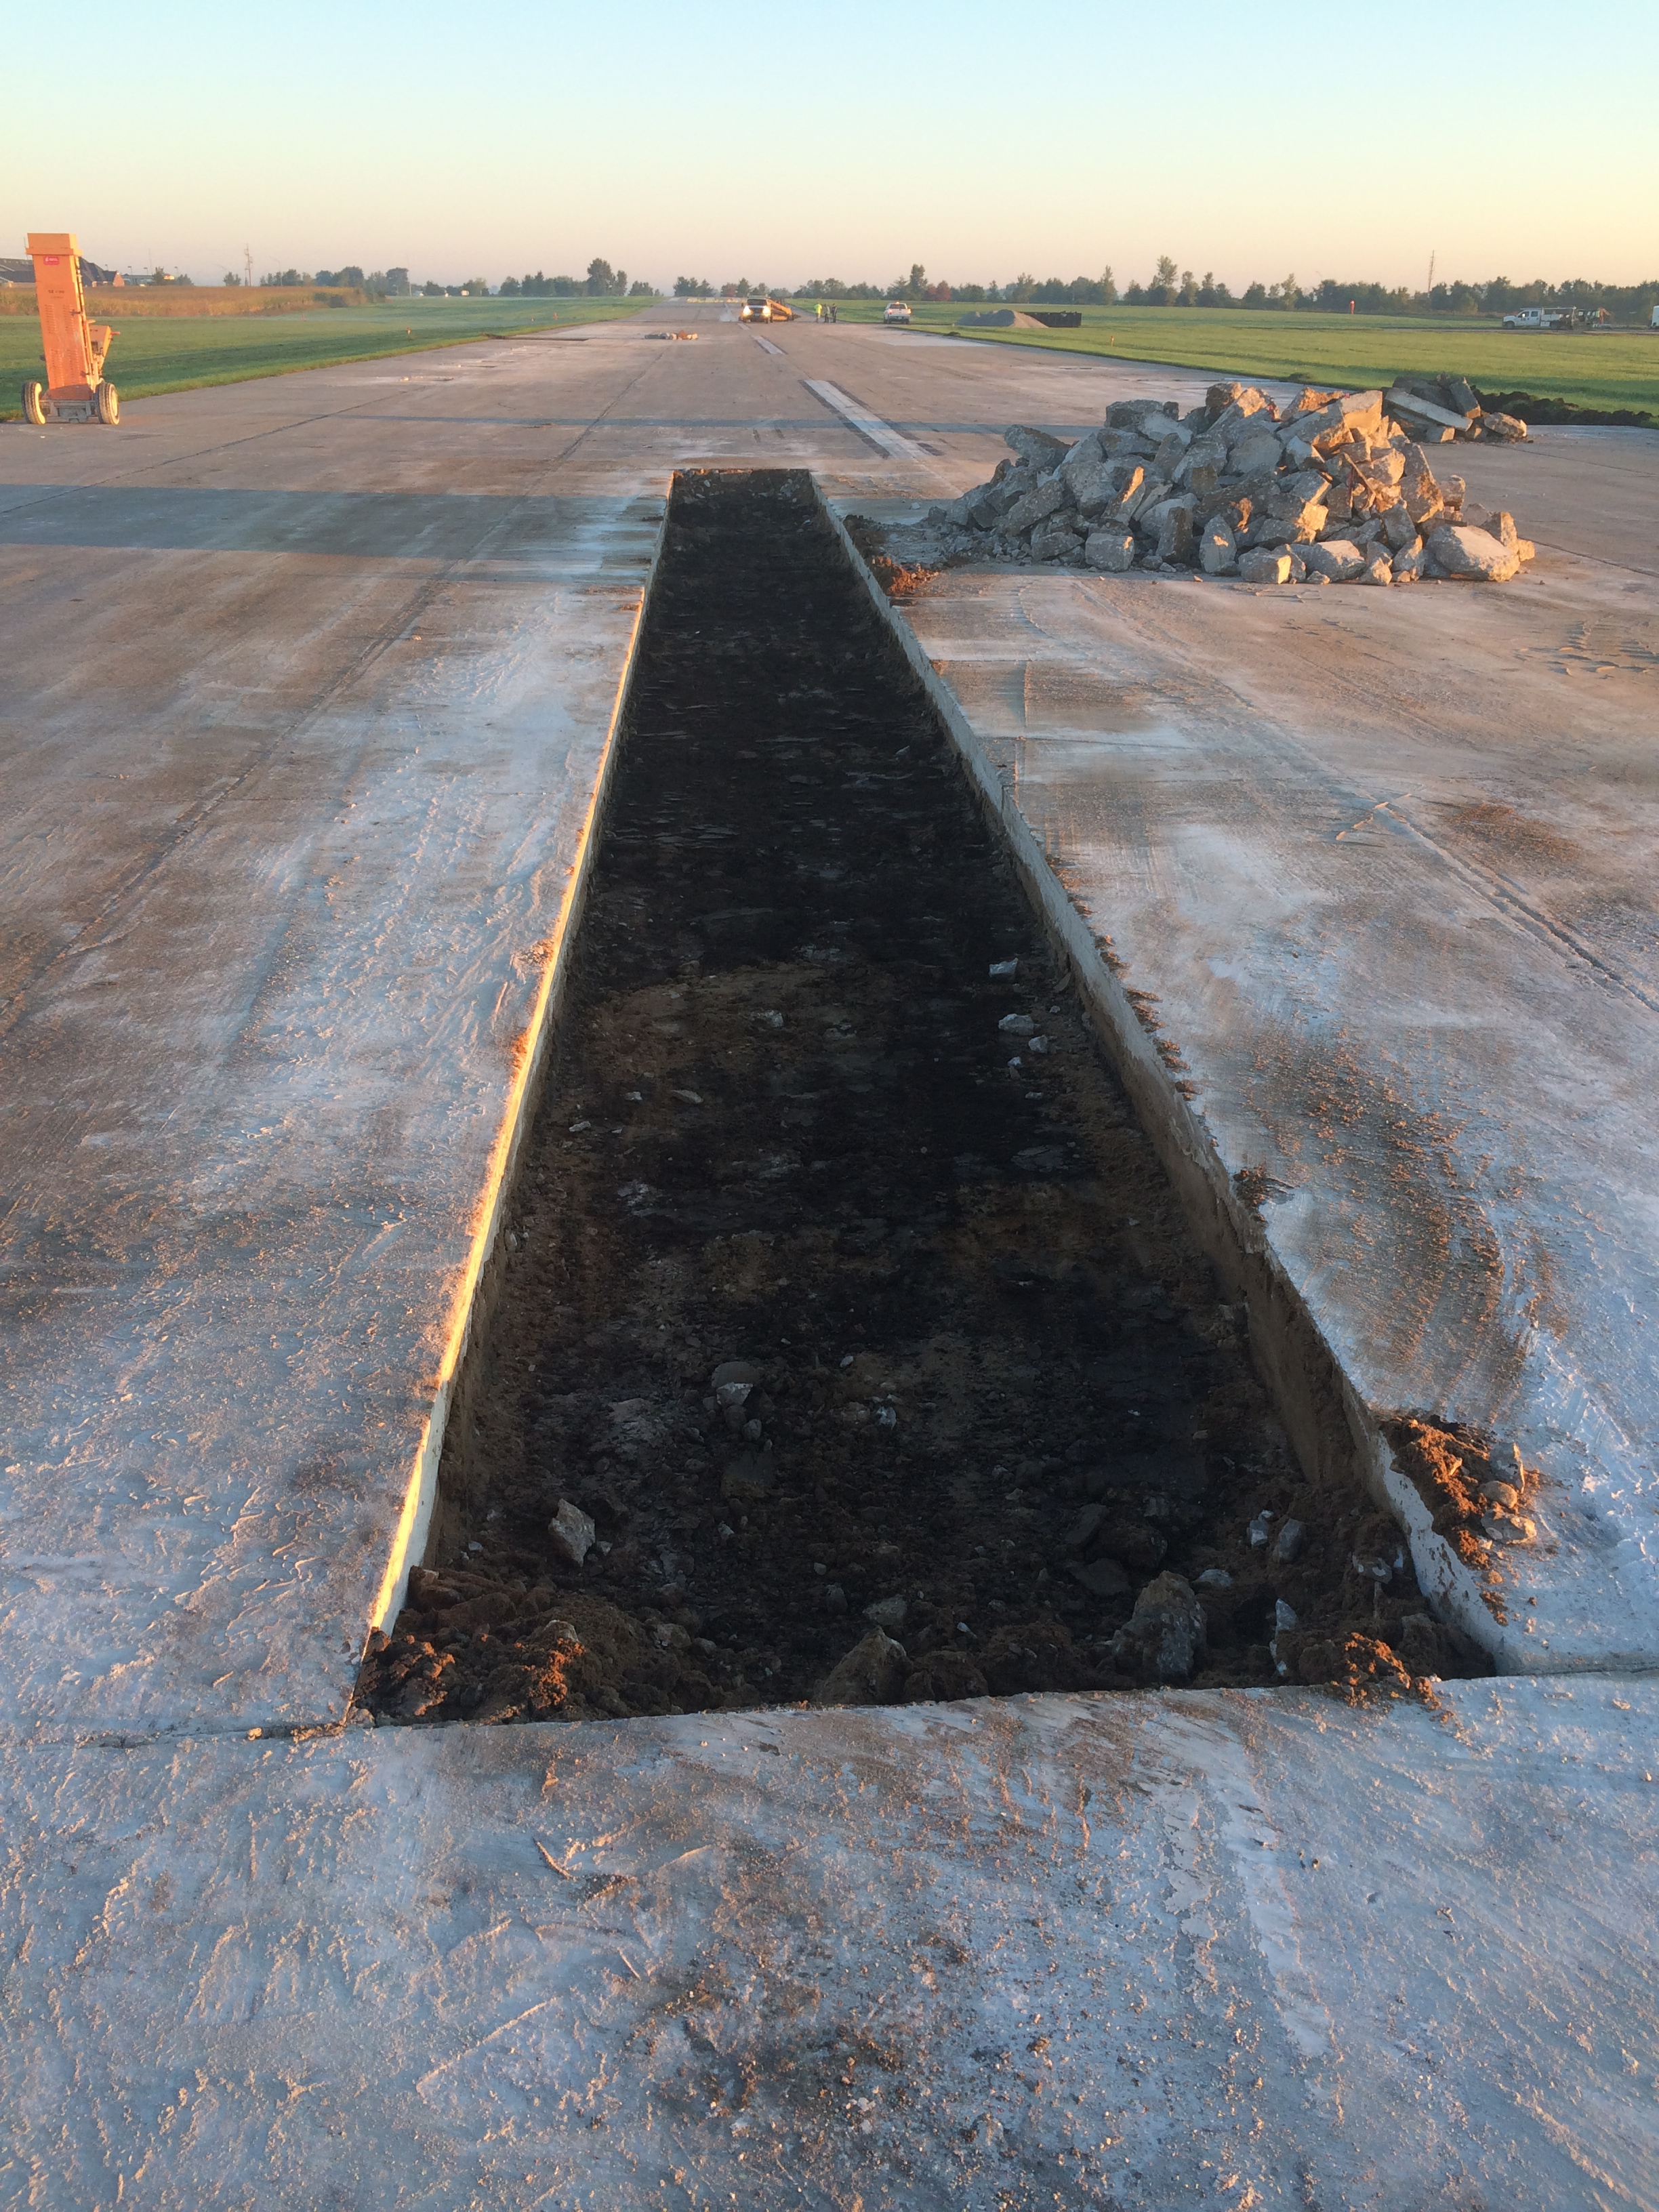 The Pella Municipal Airport is Closed from September 15 through October 6th for concrete repairs.  Please check NOTAMS for up to date opening information.